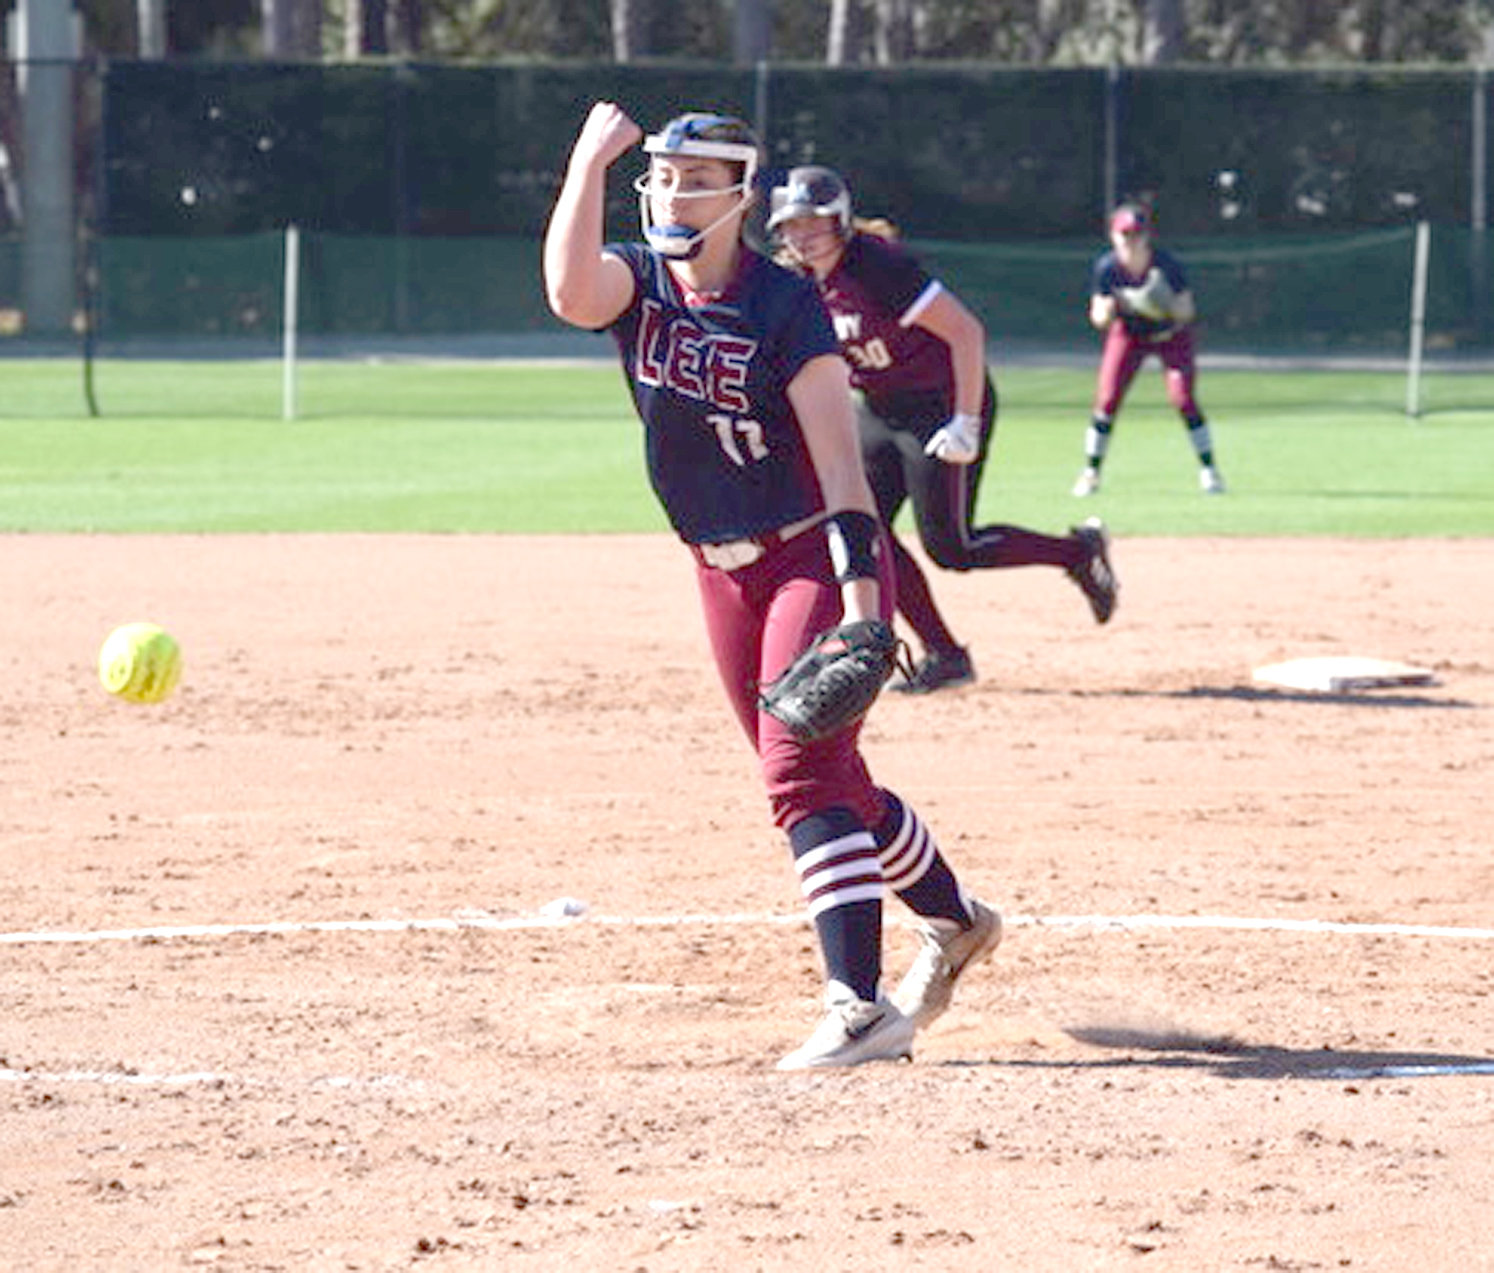 LEE UNIVERSITY freshman Taylor De Adder pitched the Lady Flames to an 8-1 victory in game one against Molloy Friday in Clearwater, Fla.,